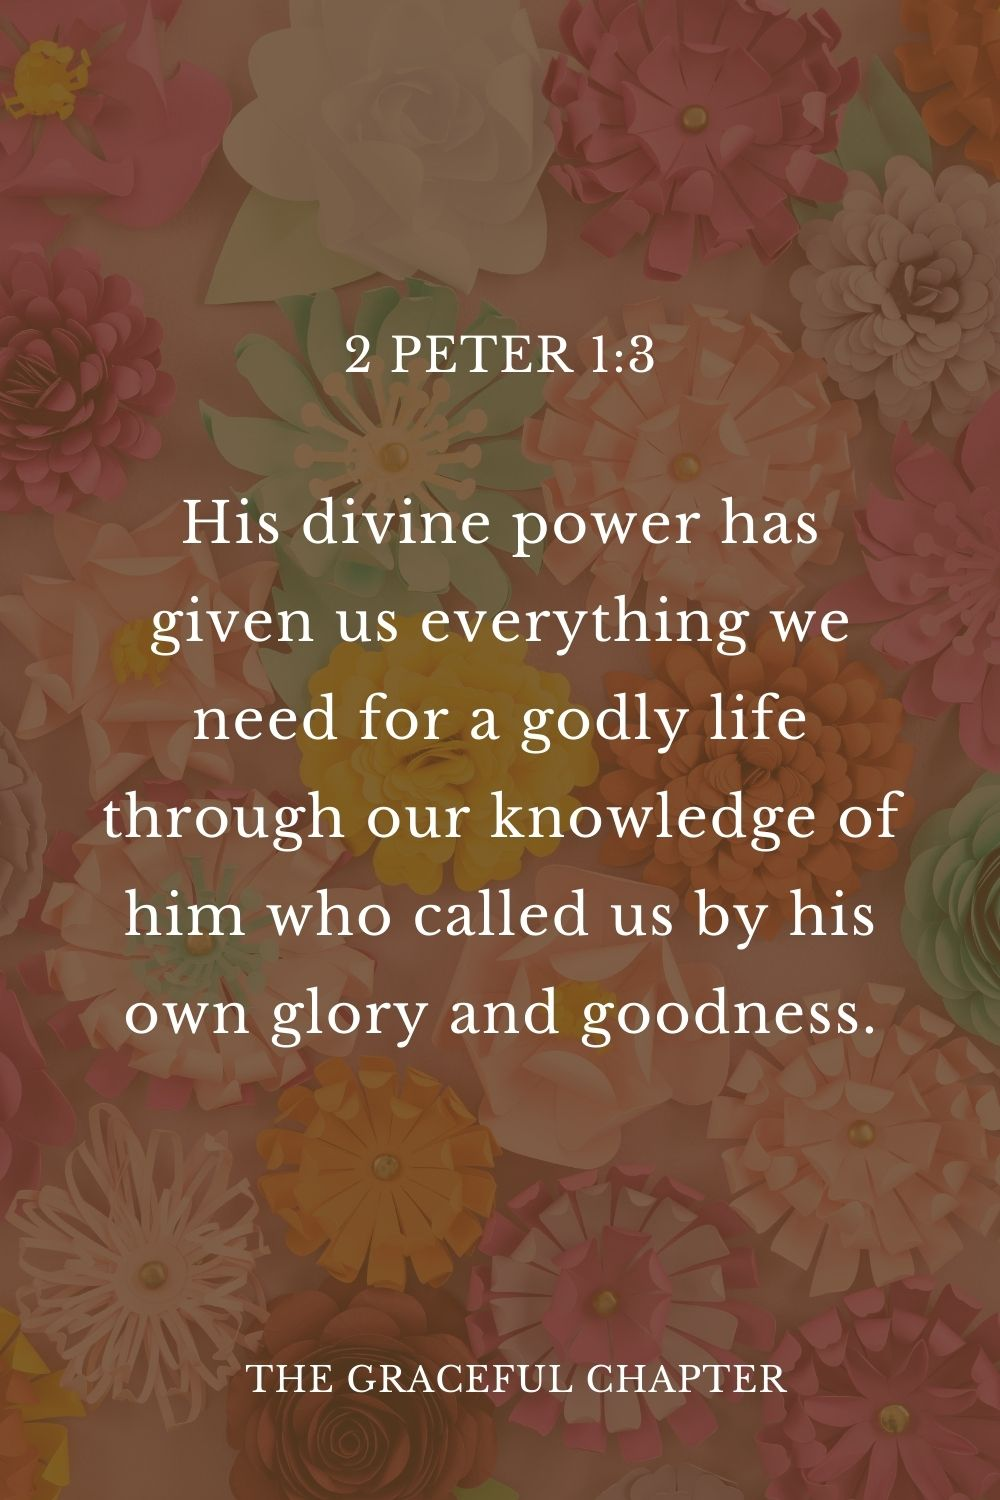 His divine power has given us everything we need for a godly life through our knowledge of him who called us by his own glory and goodness. 2 Peter 1:3